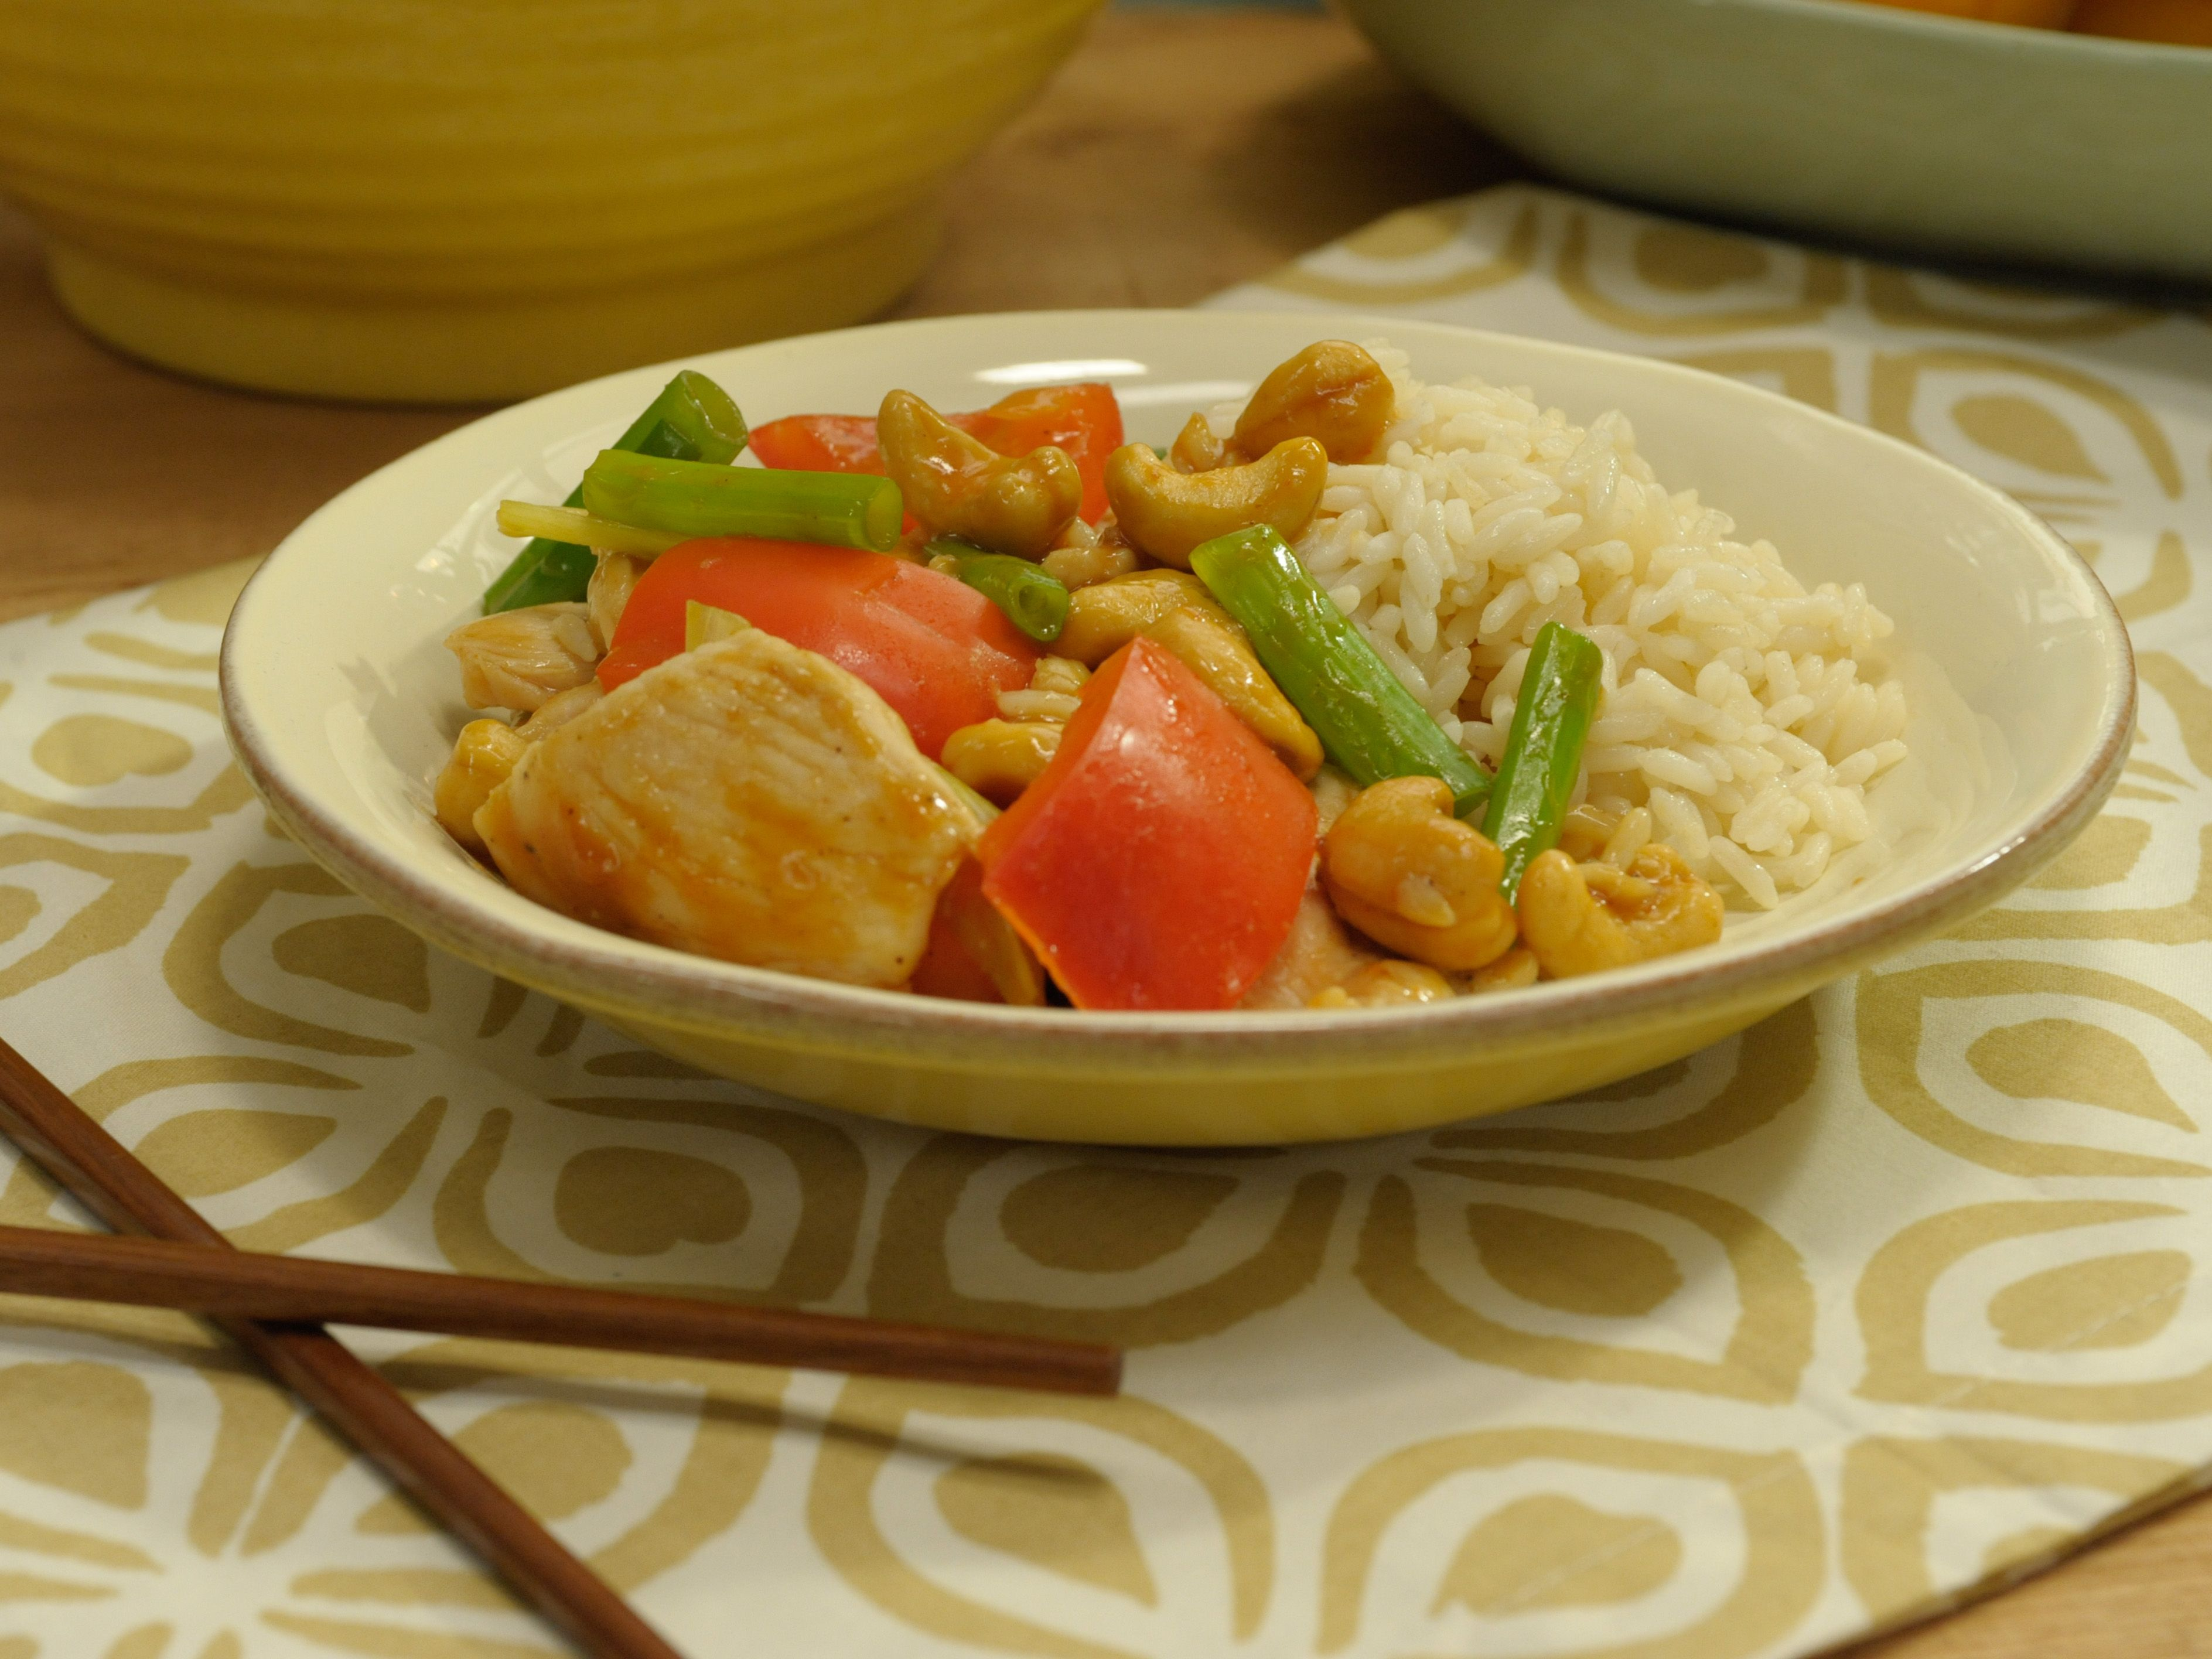 Kung po chicken recipe food network foodnetwork asian kung po chicken recipe food network foodnetwork forumfinder Image collections